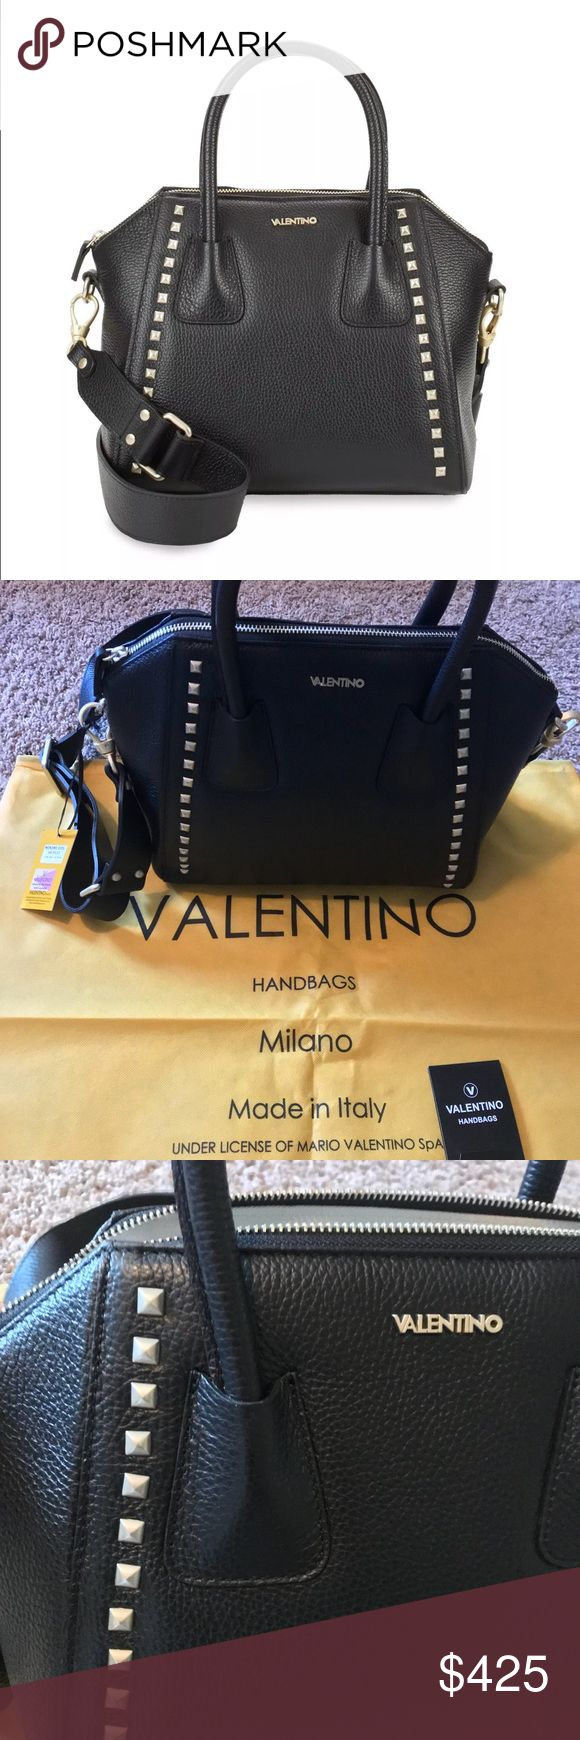 Auth Valentino by Mario Valentino Black Satchel Auth Valentino by Mario Valentino Satchel Black with brush gold studs and brush gold Hardware ❤️❤️❤️❤️❤️❤️😜😜😜😜😜!!!!!!!! Comes with Dust Bag and authenticity papers!!! Retail for $895 Valentino Bags Satchels